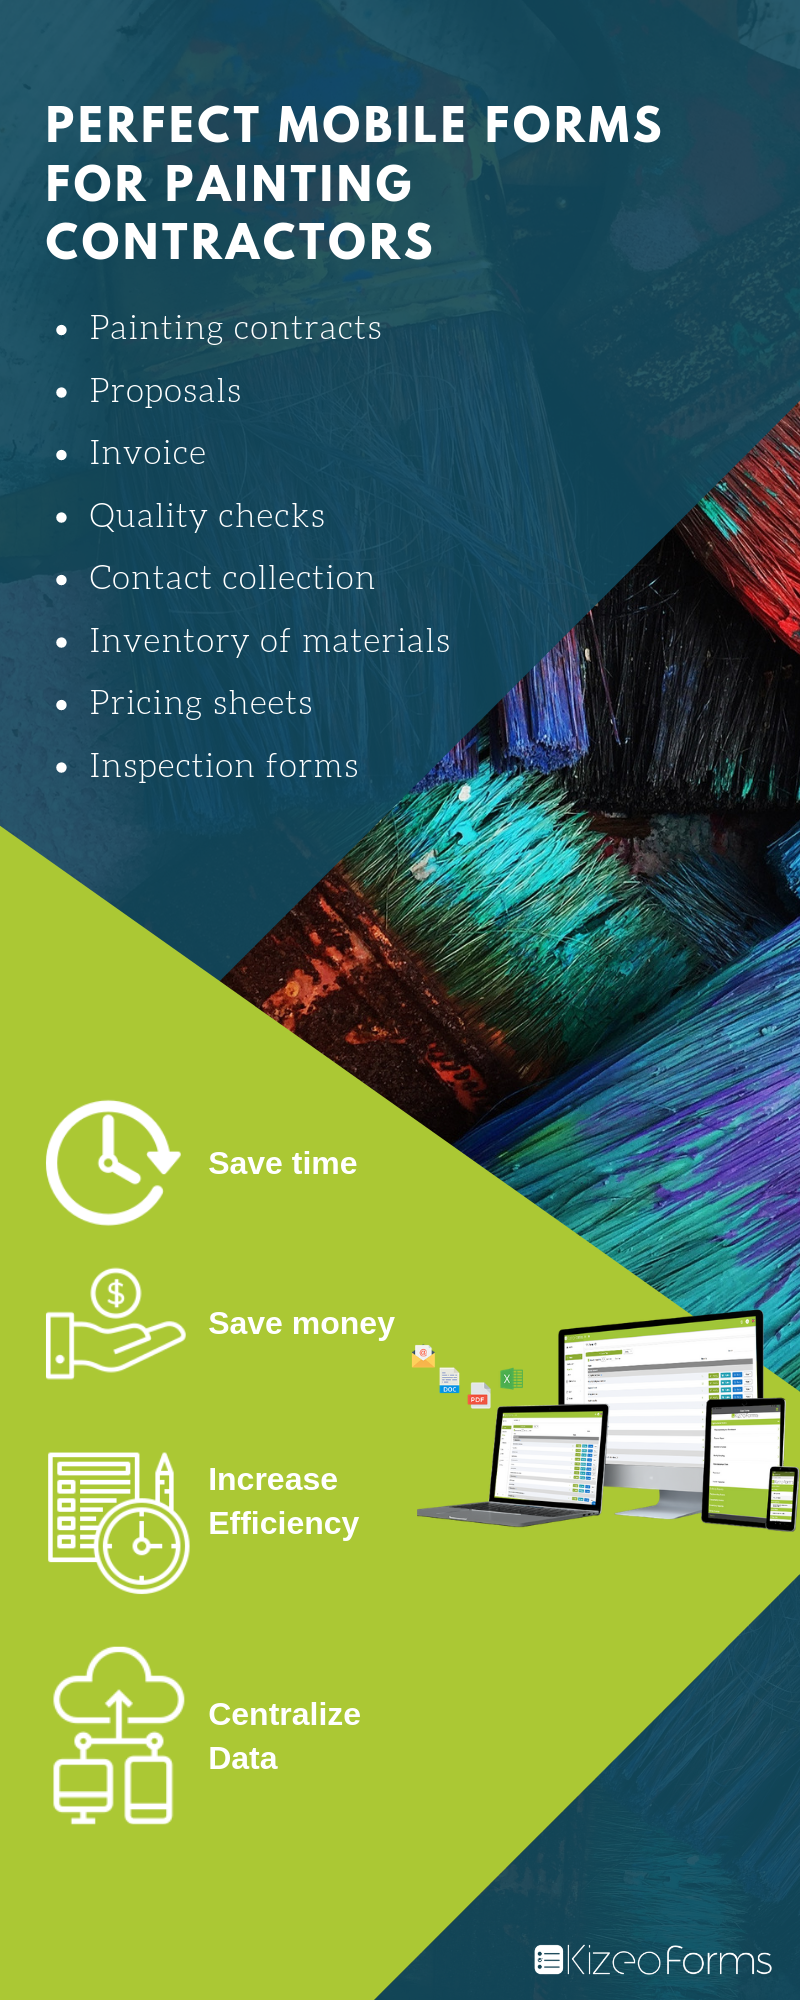 Mobile forms for painting contractors